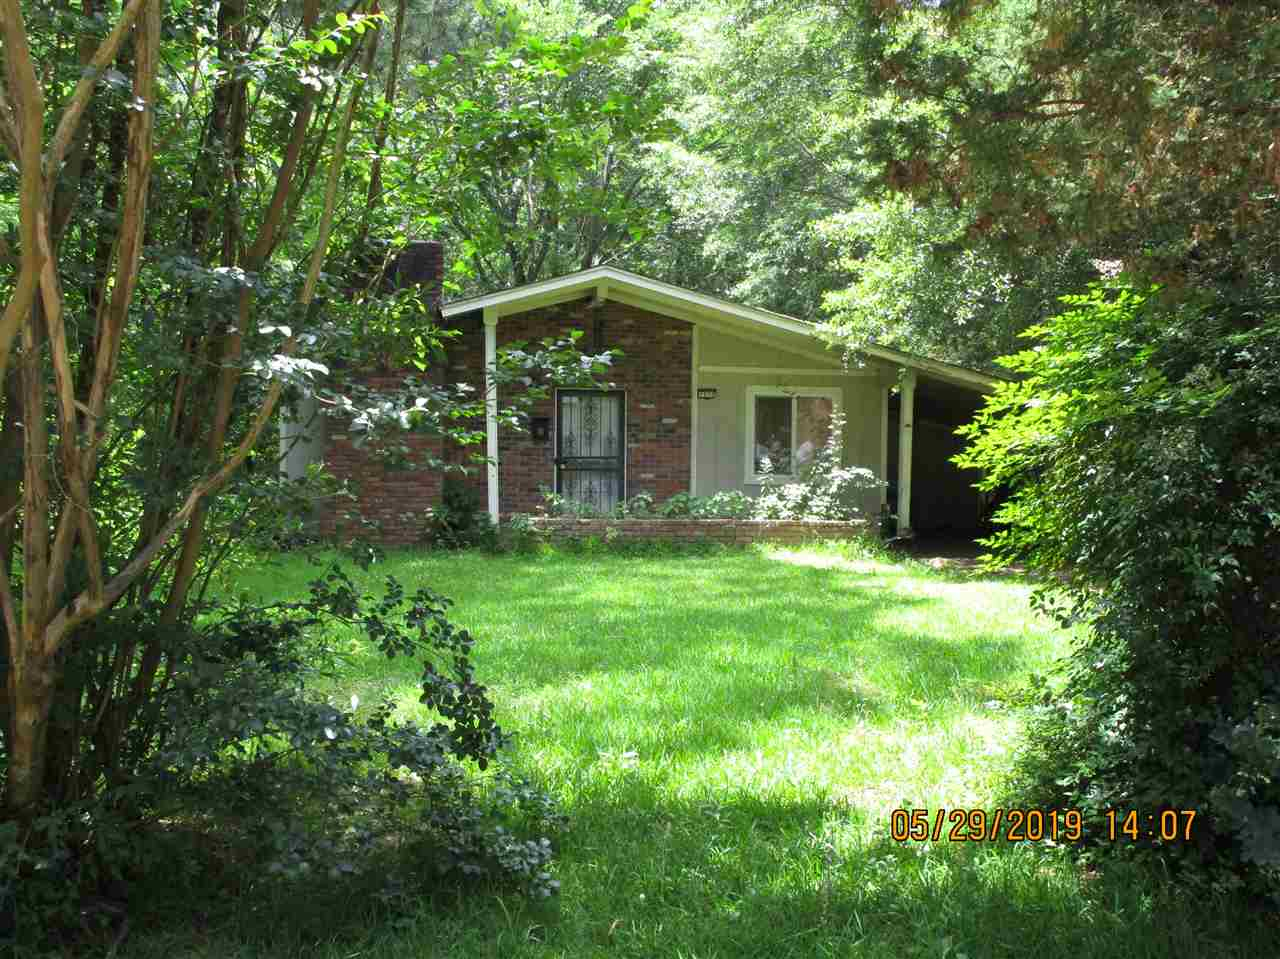 primary photo for 1577 LOWERY LN, Jackson, MS 39209, US